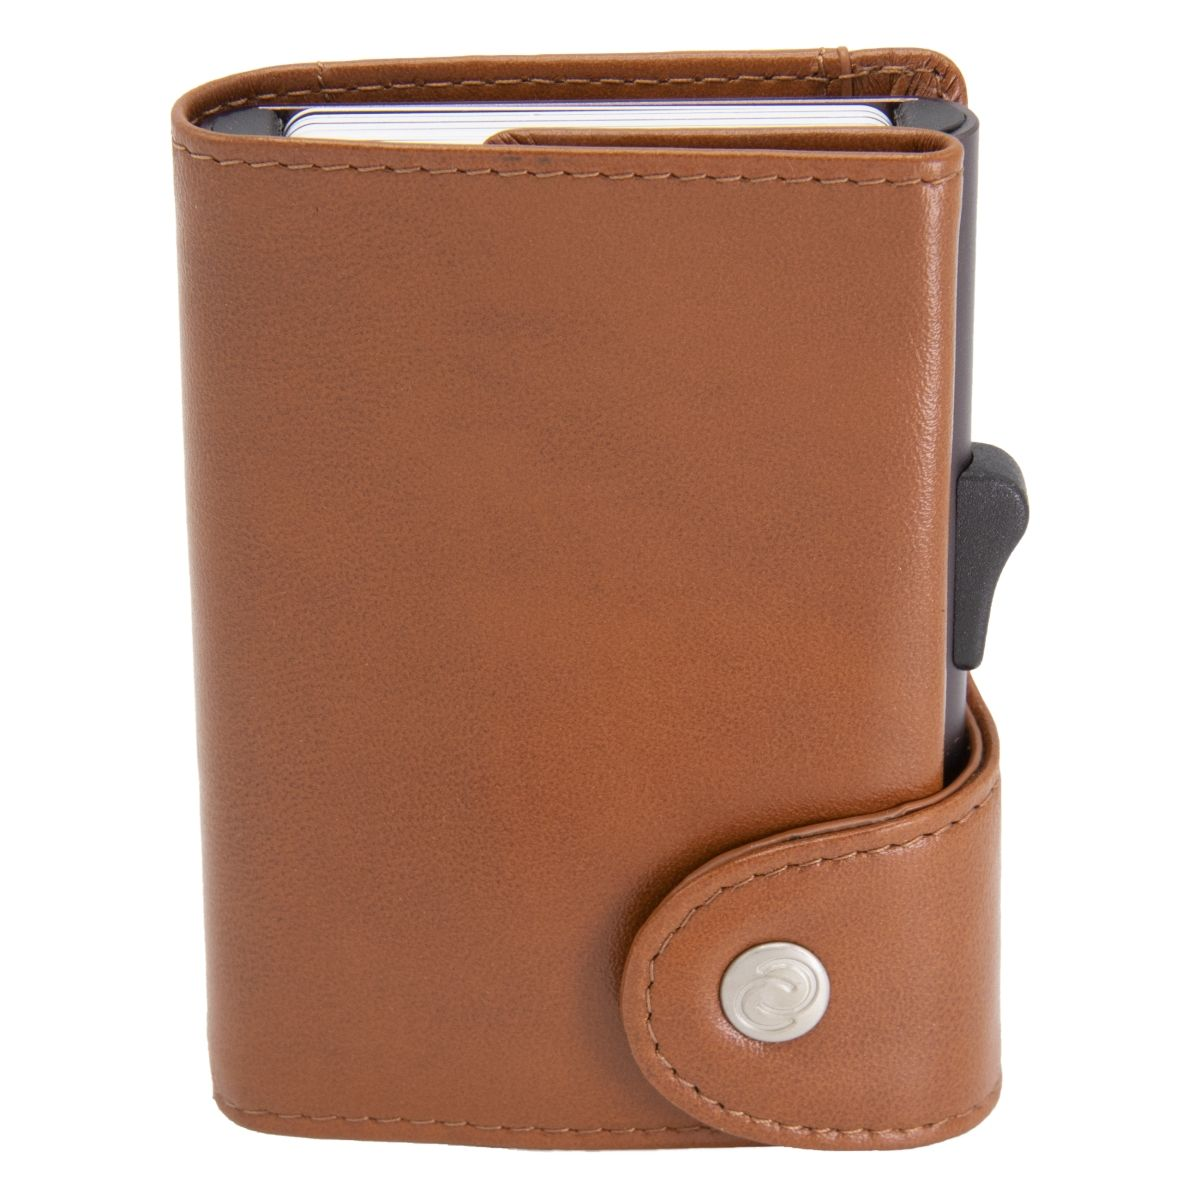 C-Secure XL Aluminum Wallet with Genuine Leather and Coins Pocket - Chestnut